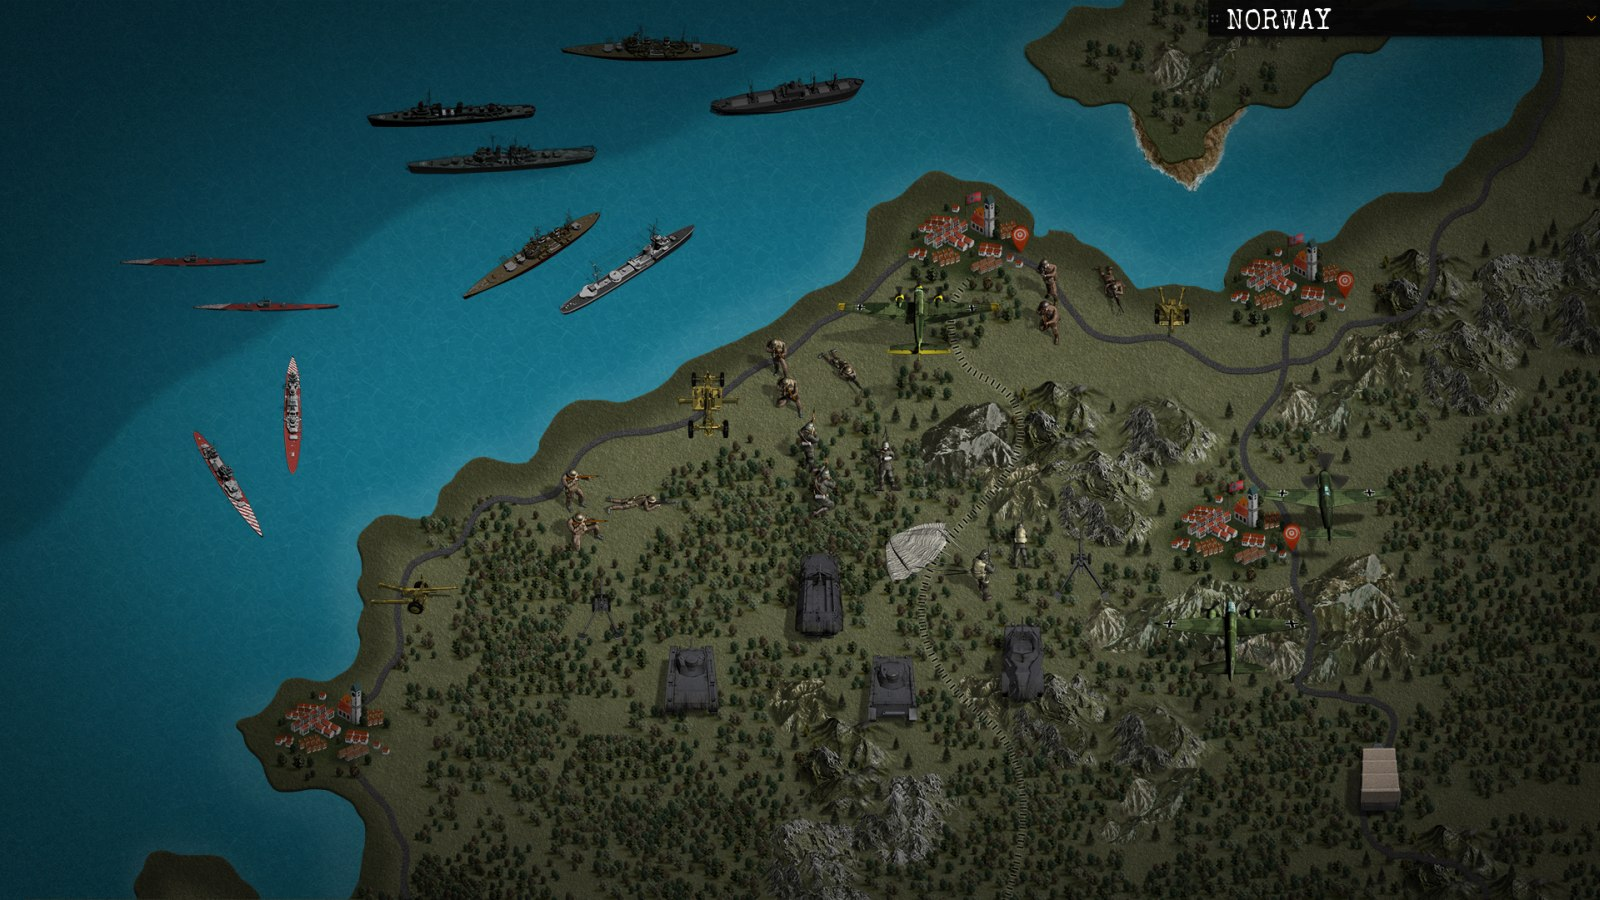 Klotzen The Game Turnbased Operational Strategy Game Set During WW - Norway map game